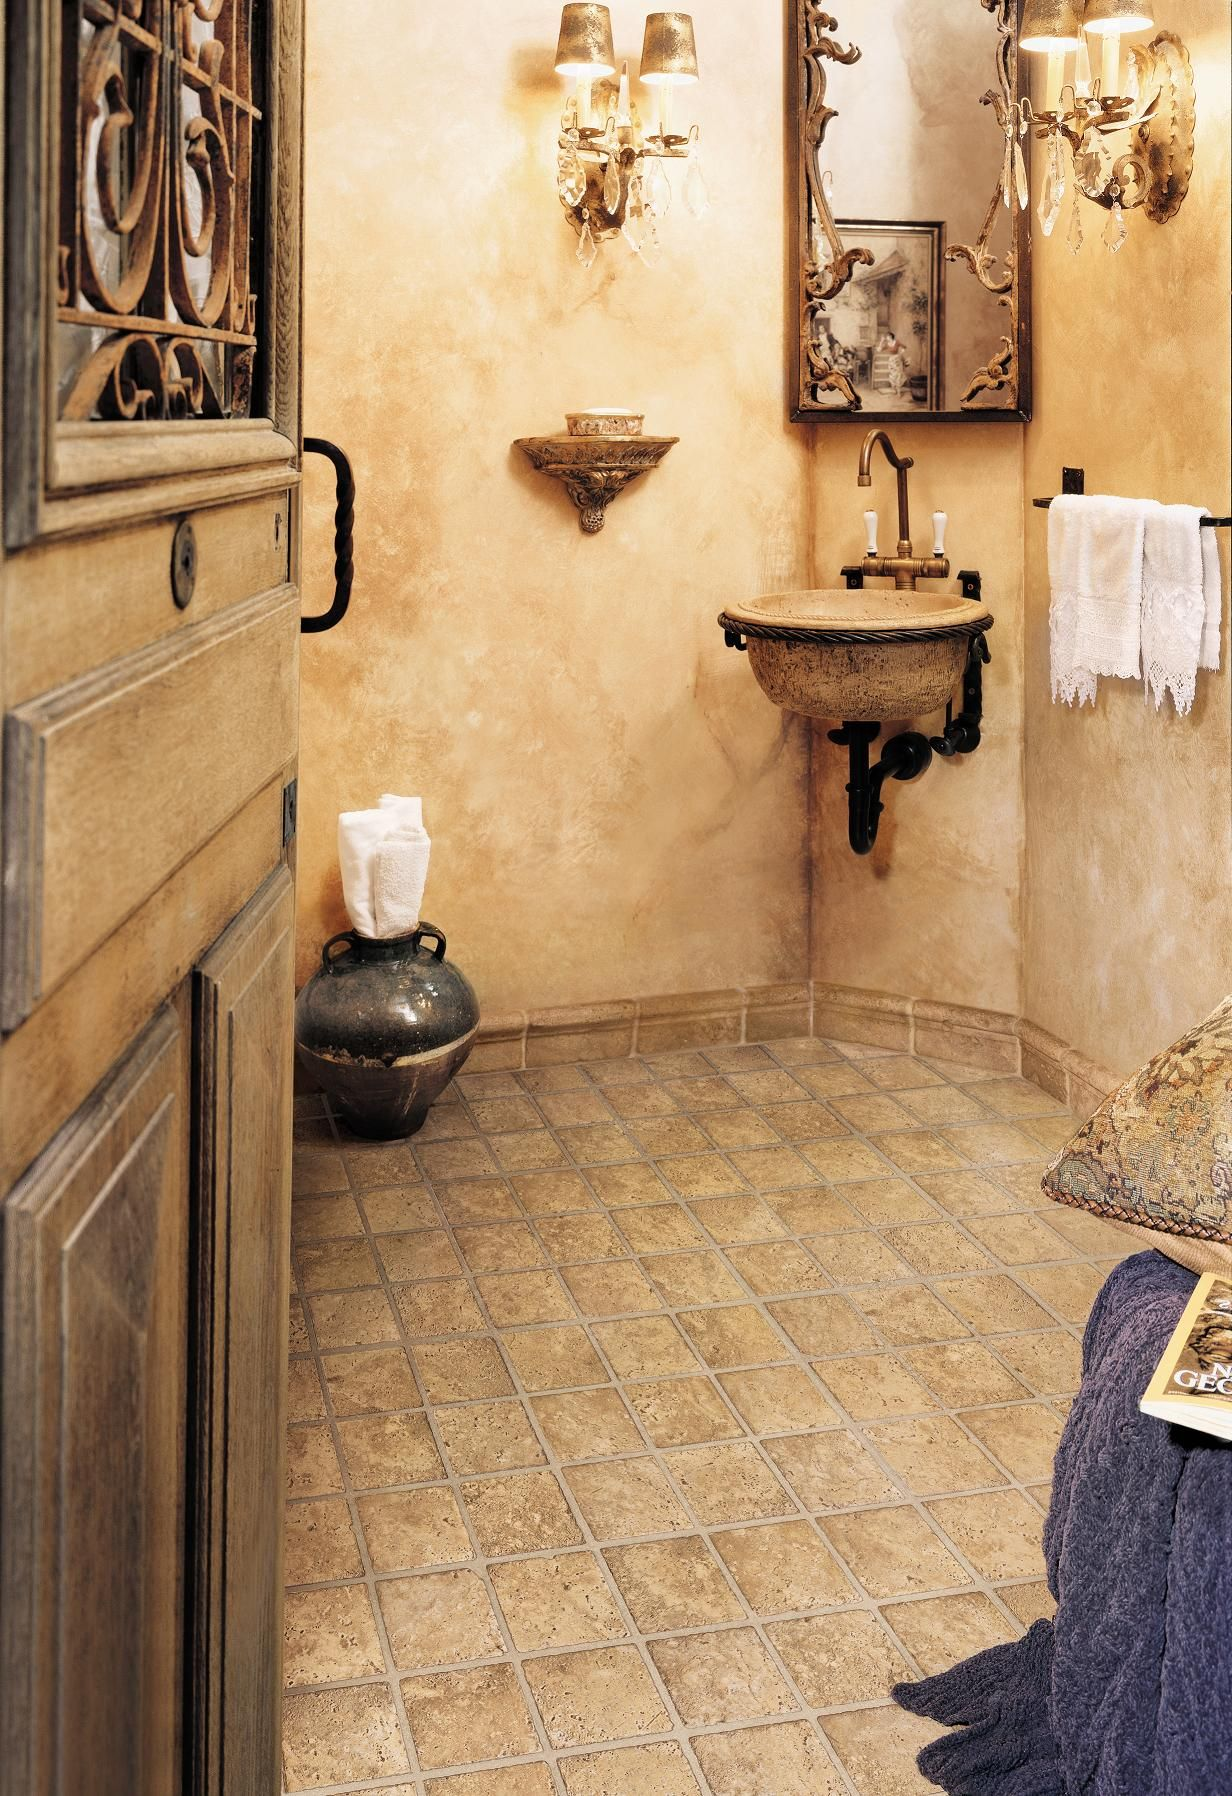 Mannington Sobella Vinyl | Vinyl | Pinterest | Bath, Powder room and ...